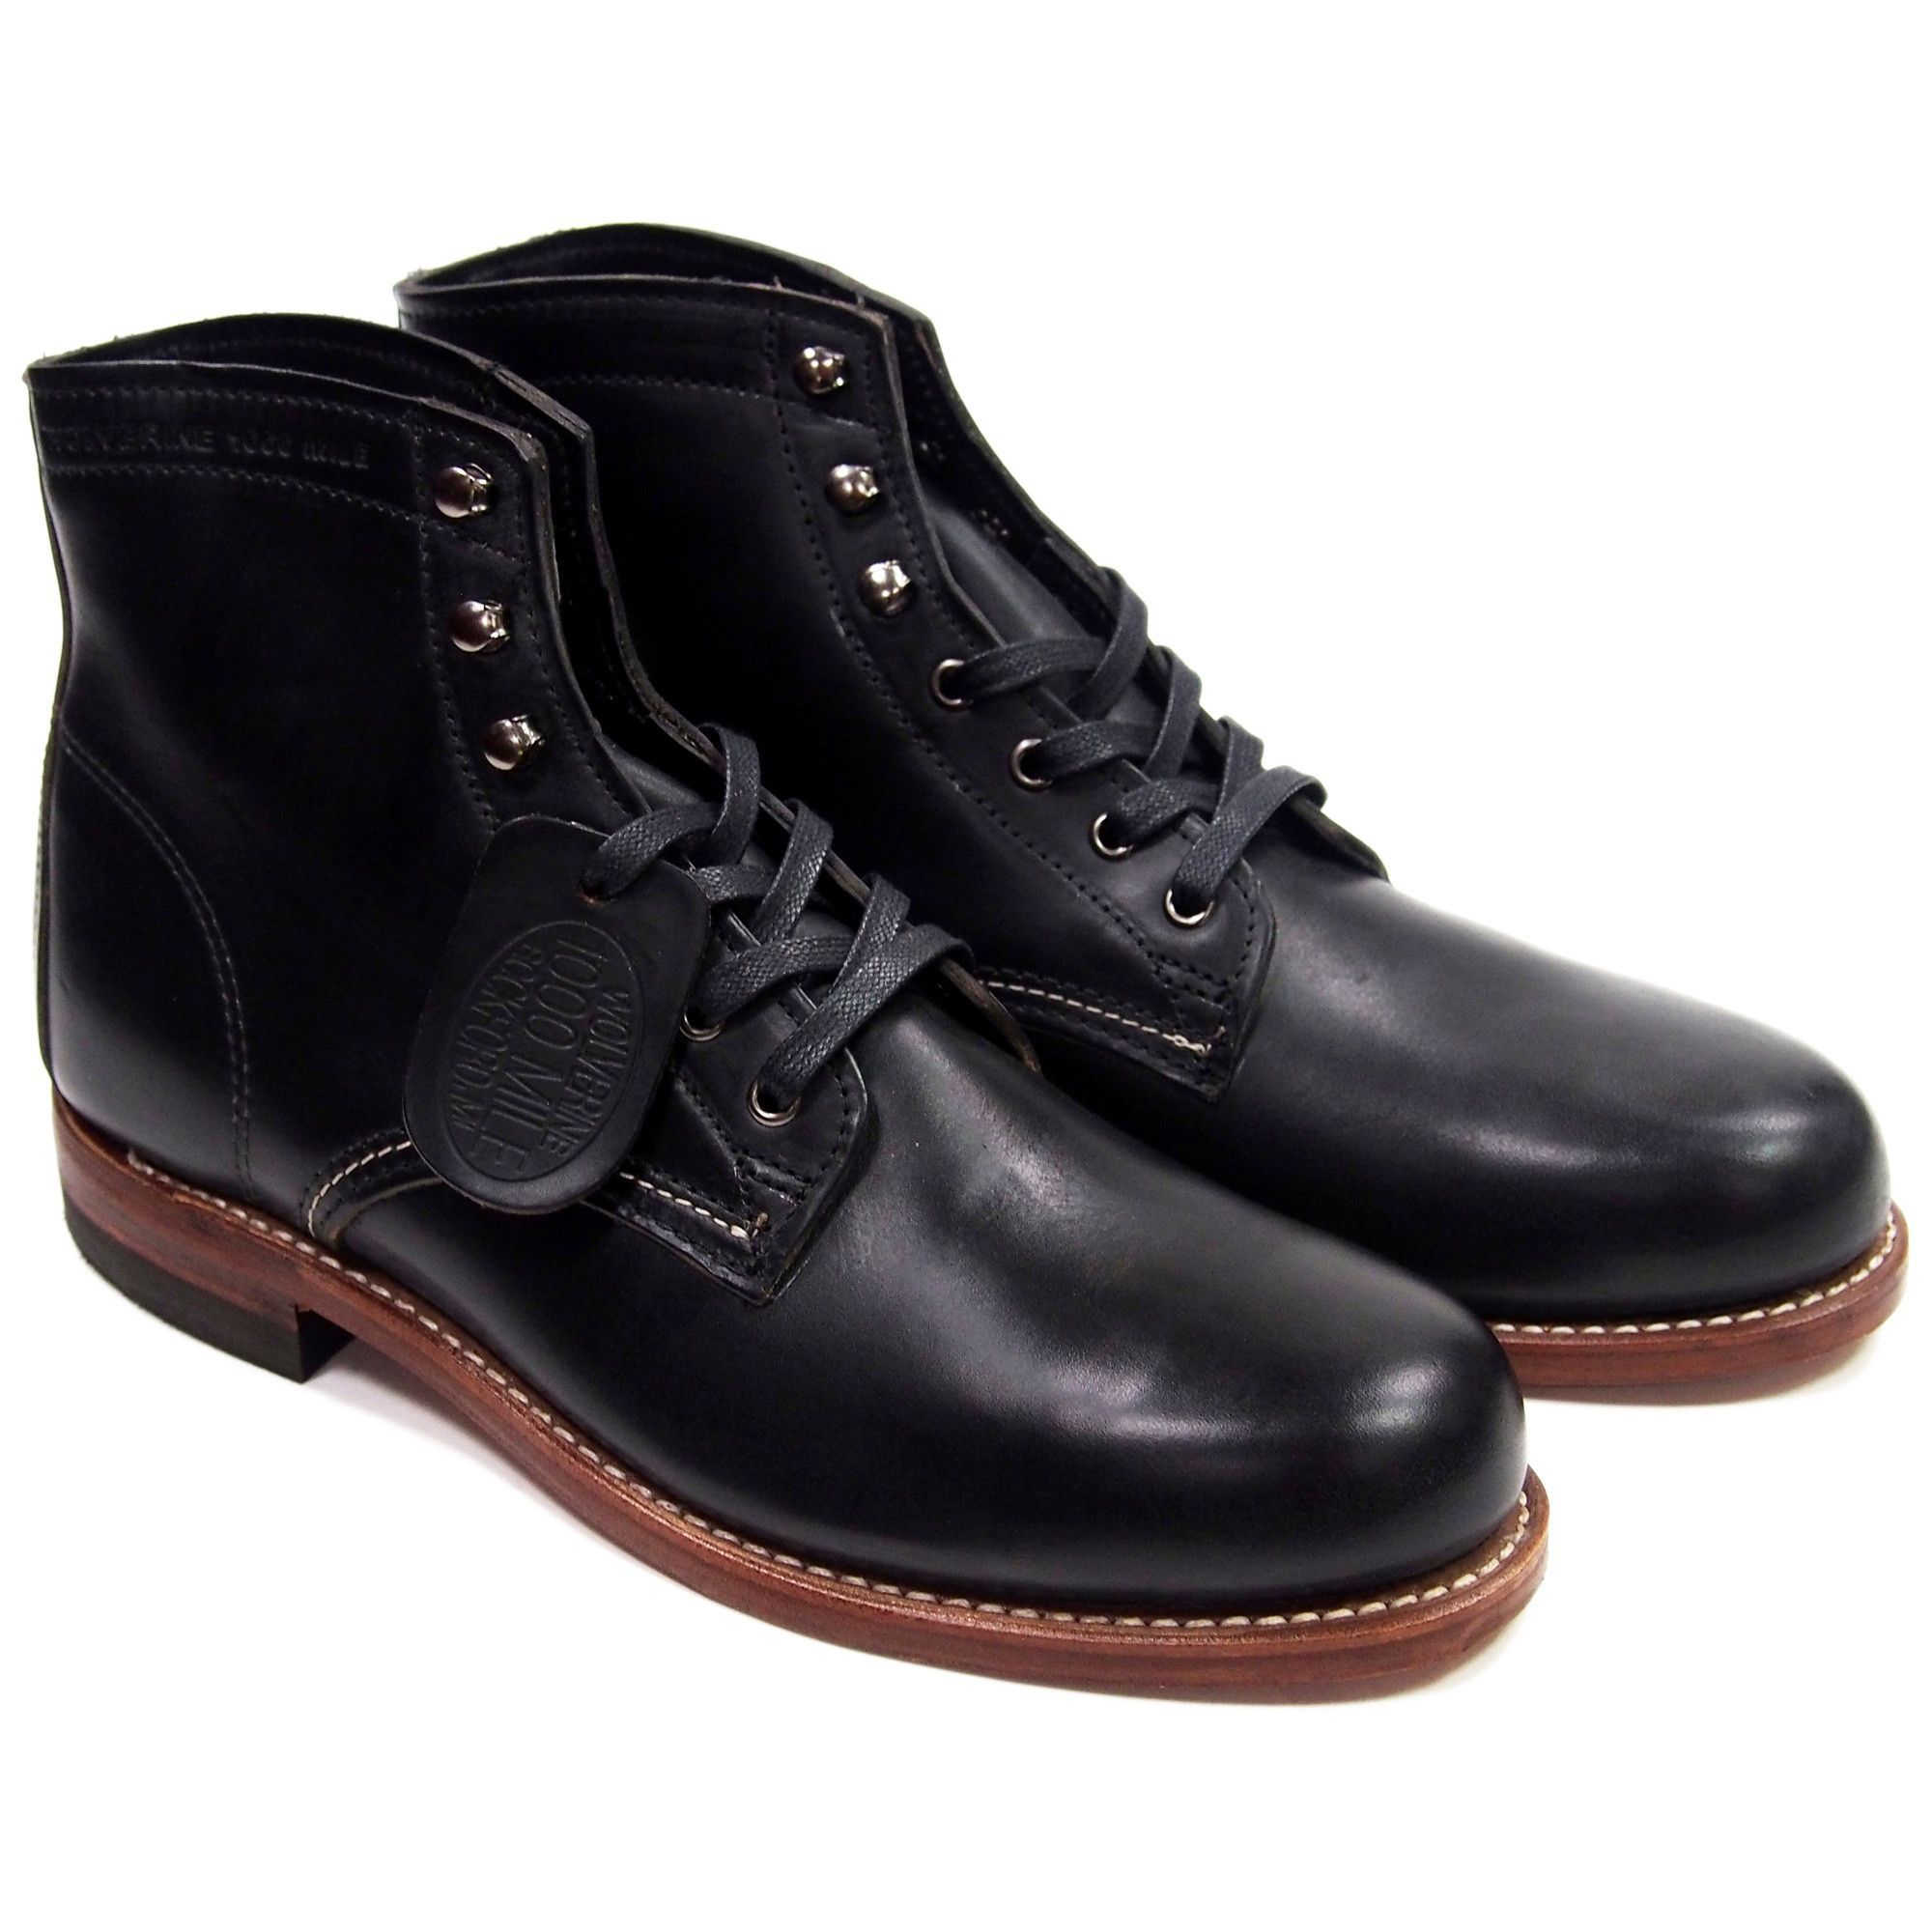 27e85726061 Wolverine 1000 Mile Boots - Black - Made in USA   dressy shoes ...